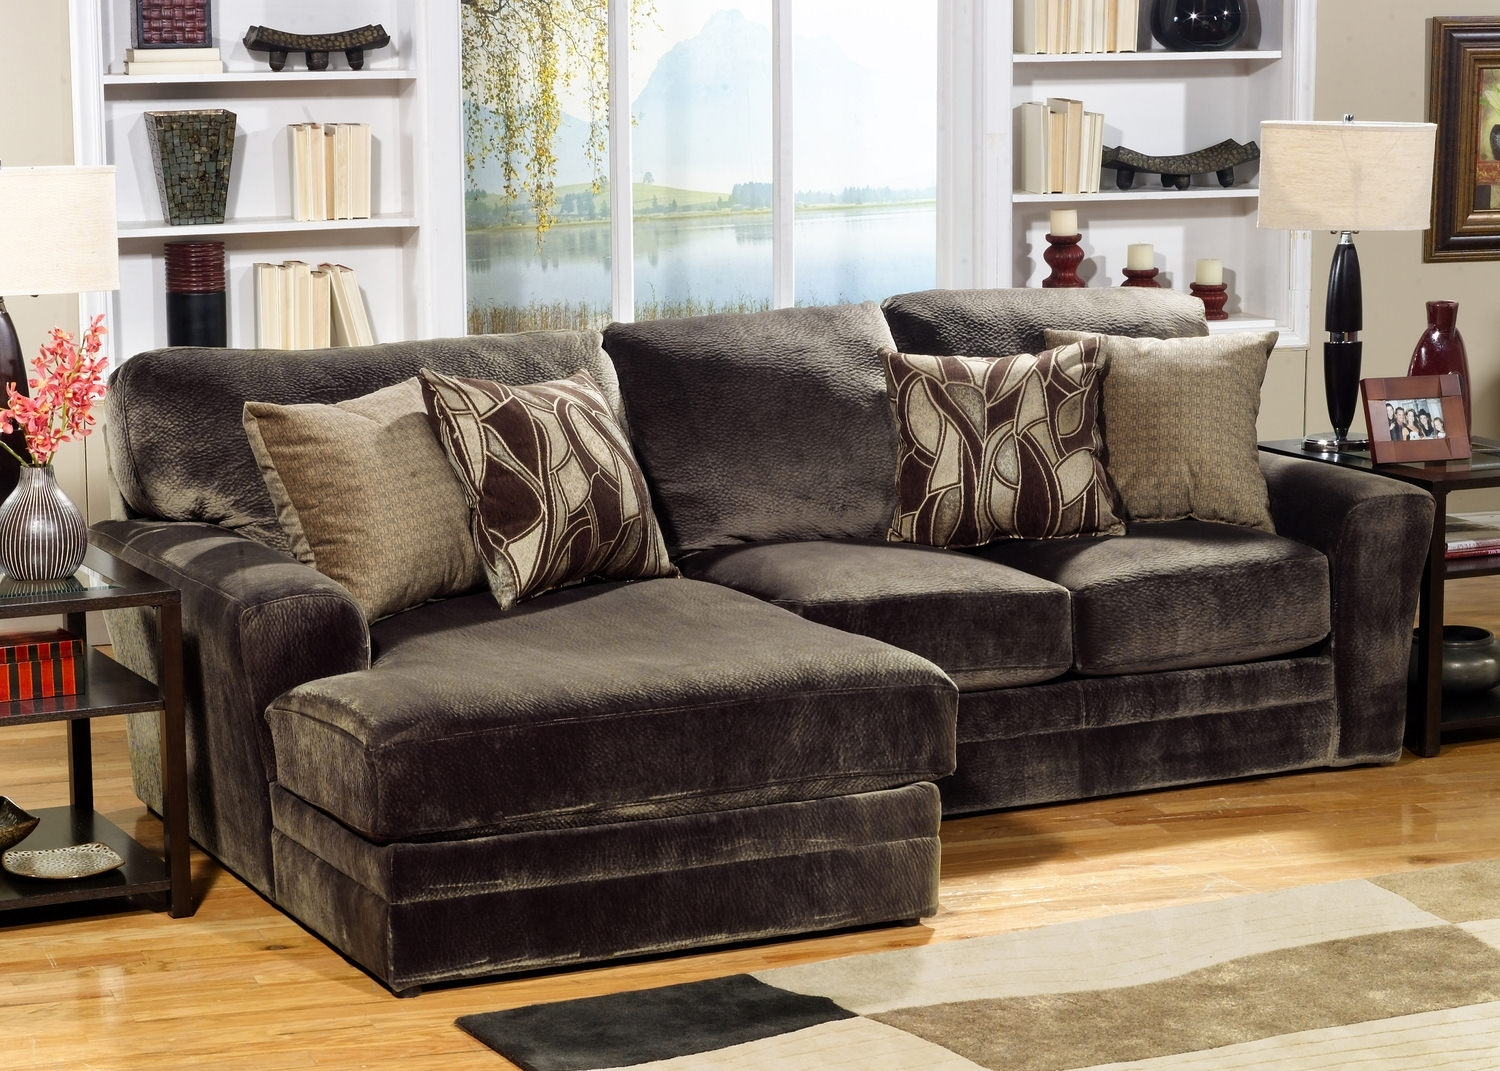 Rainier 2 Piece Modular Sectional | Hom Furniture Pertaining To St Cloud Mn Sectional Sofas (View 8 of 10)